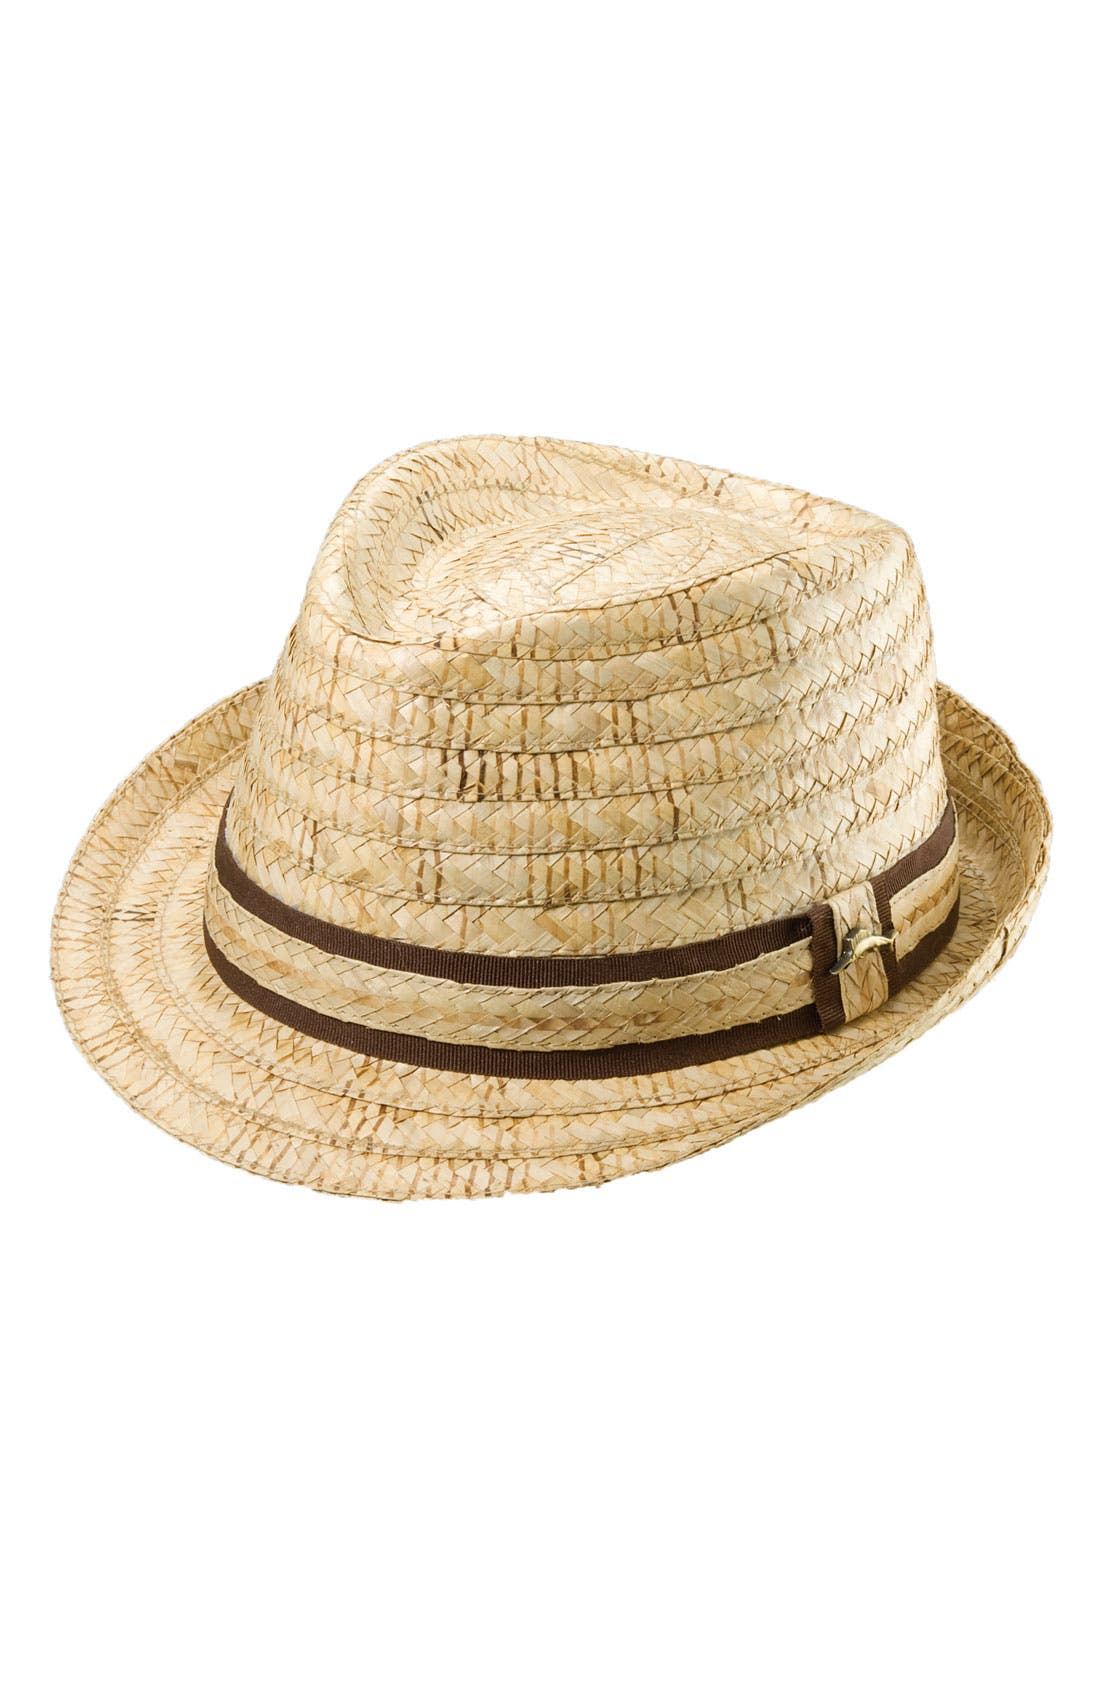 Alternate Image 1 Selected - Tommy Bahama Buri Braid Fedora